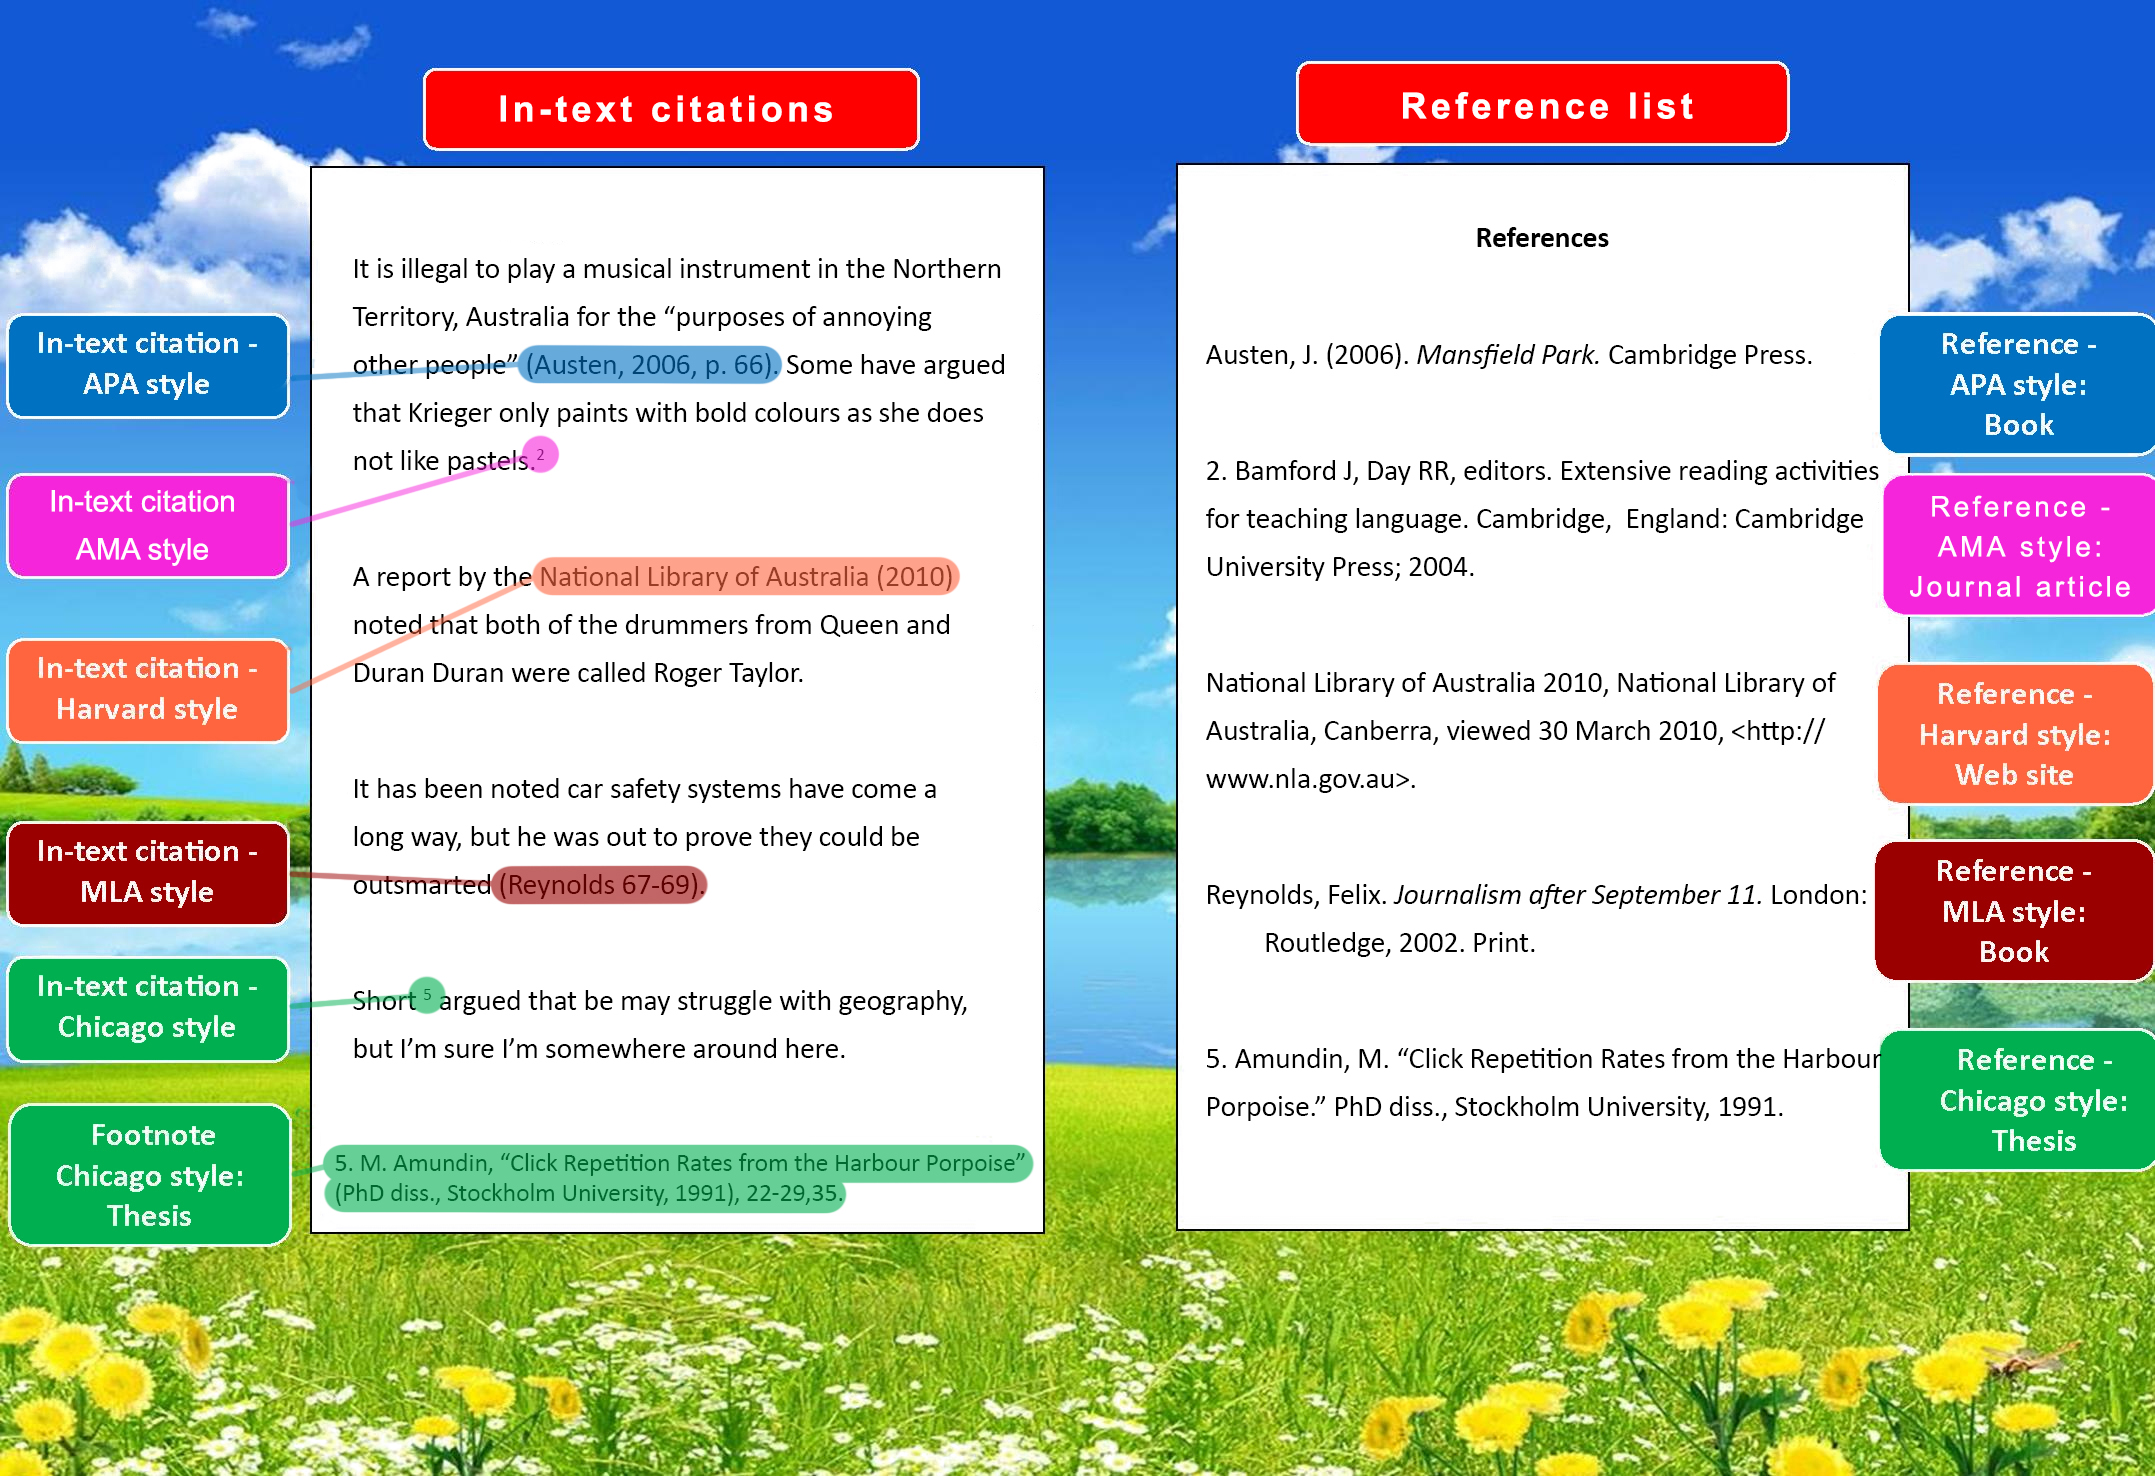 Image has several styles lined up next to each other, showing the in-text citation and the reference list entry side-by-side